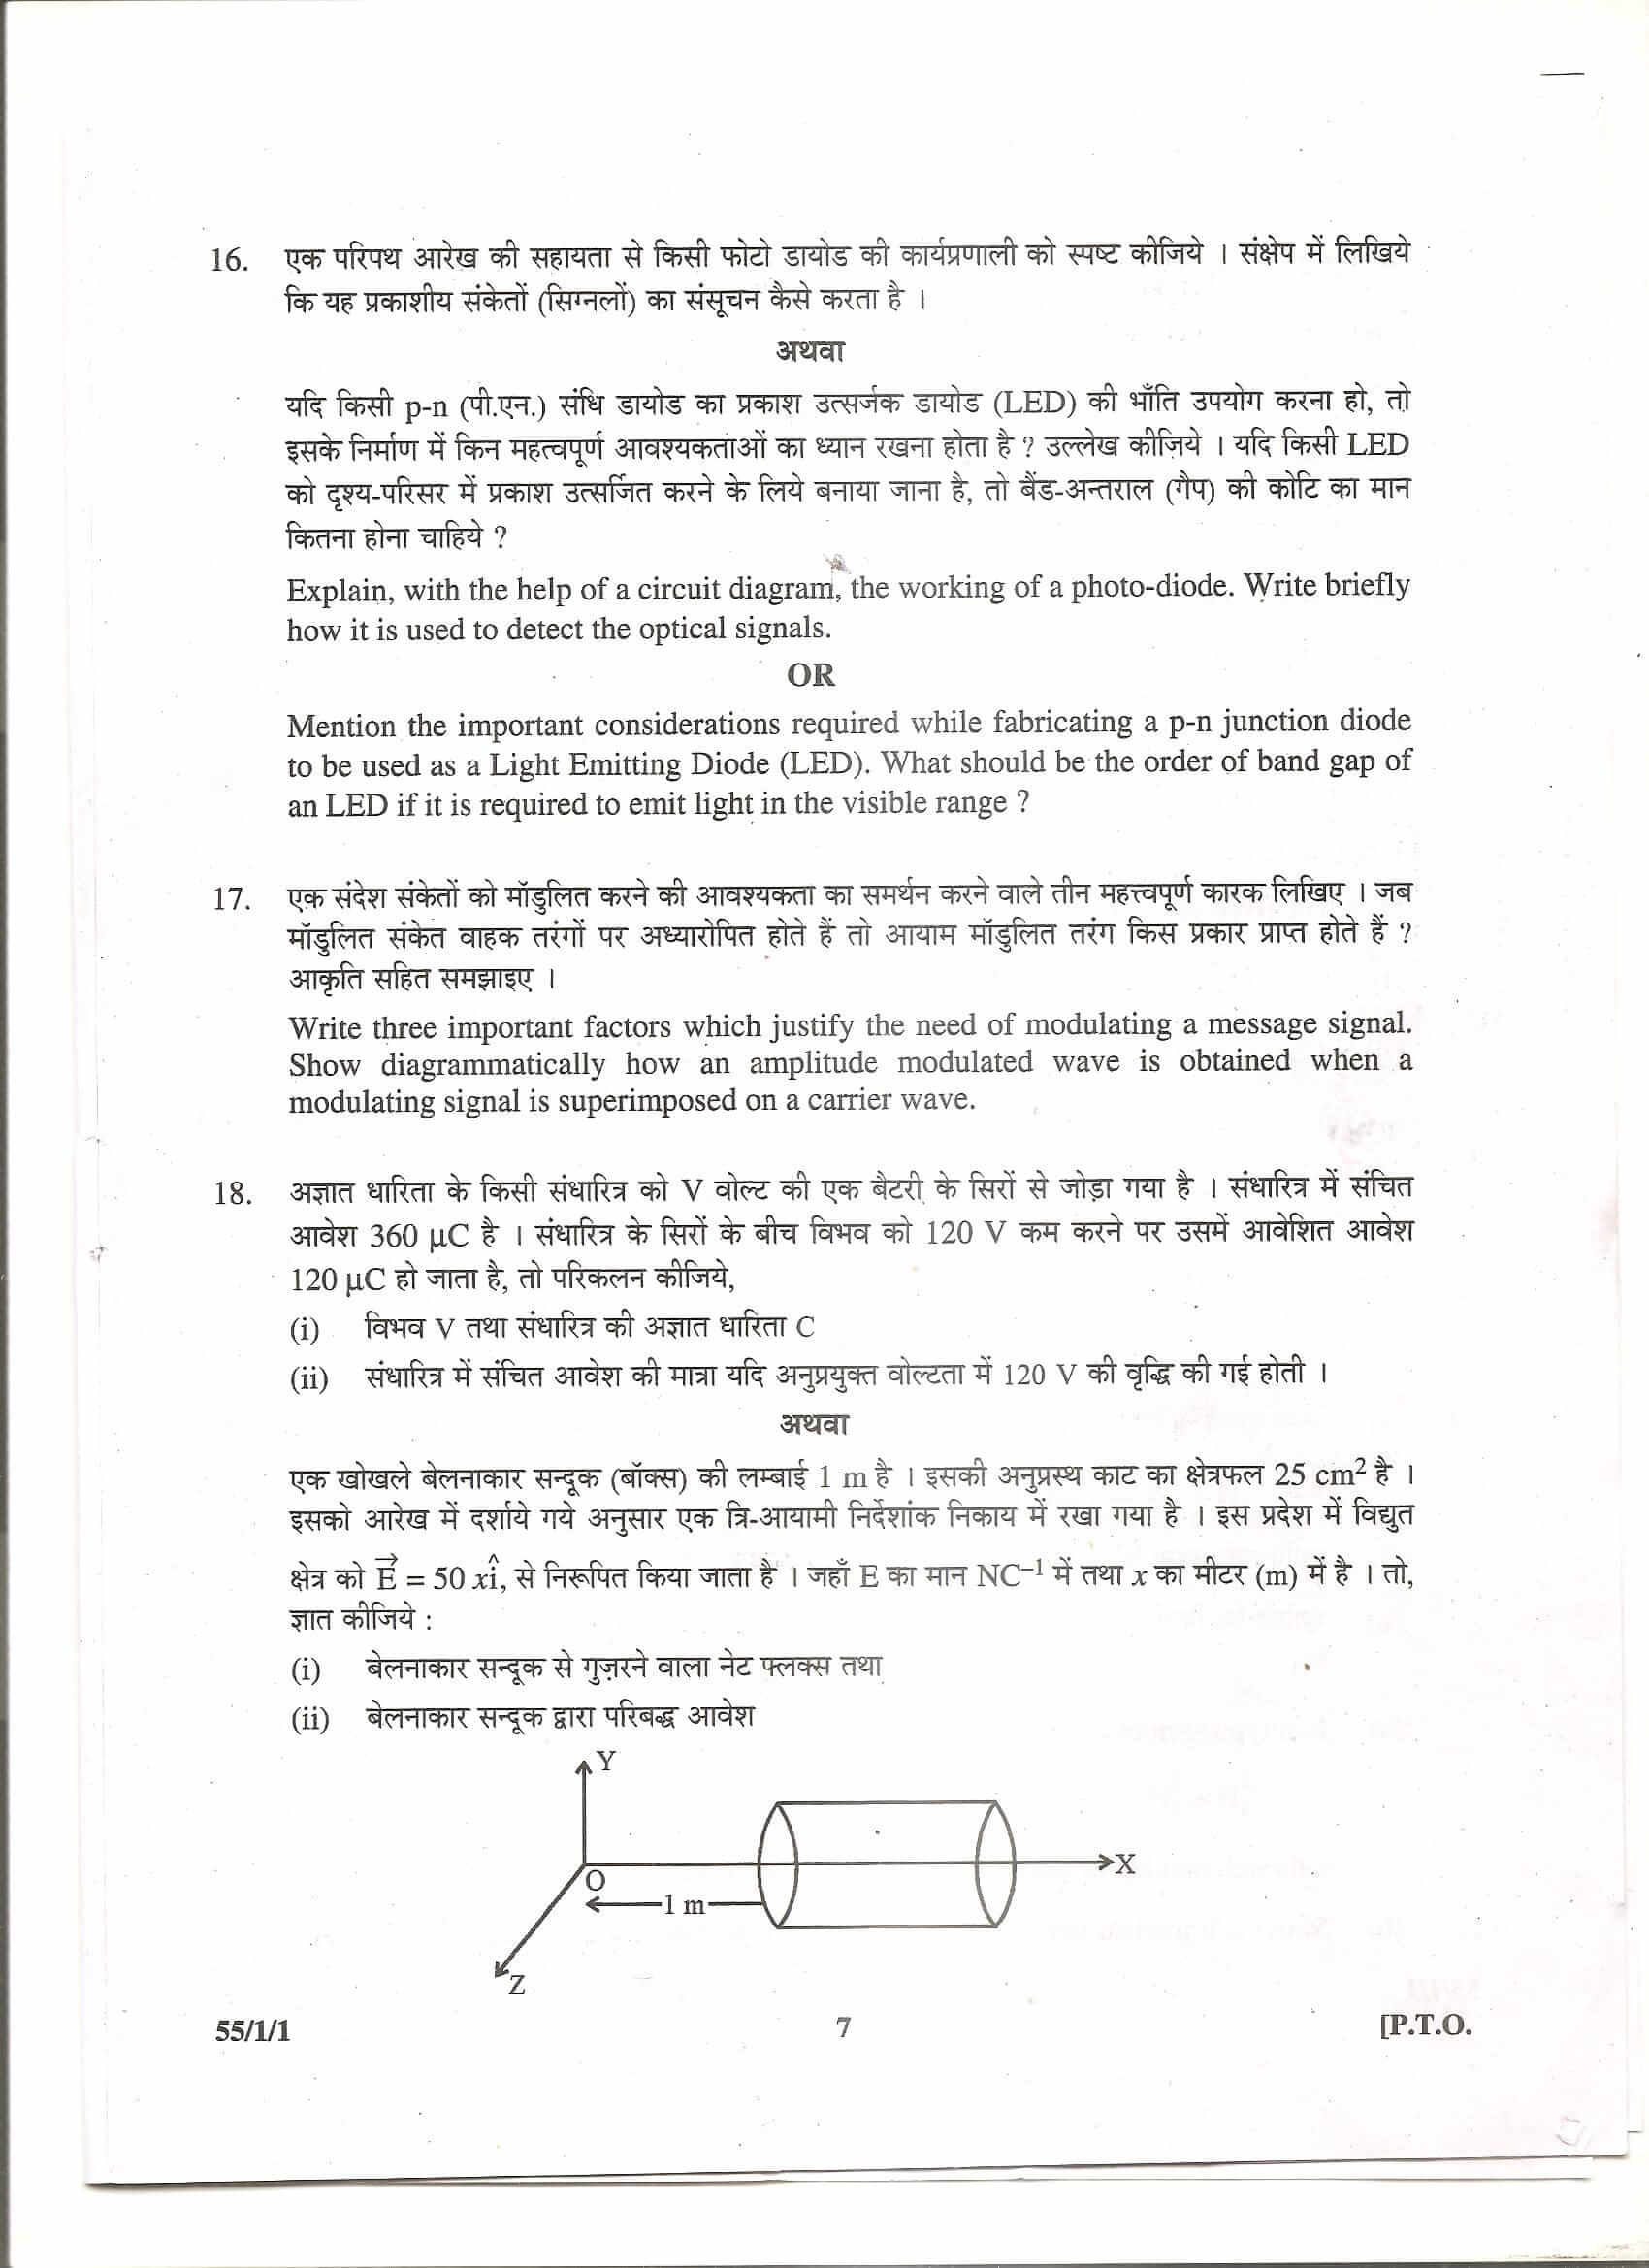 cbse class 12 phy 2013 question paper set 1